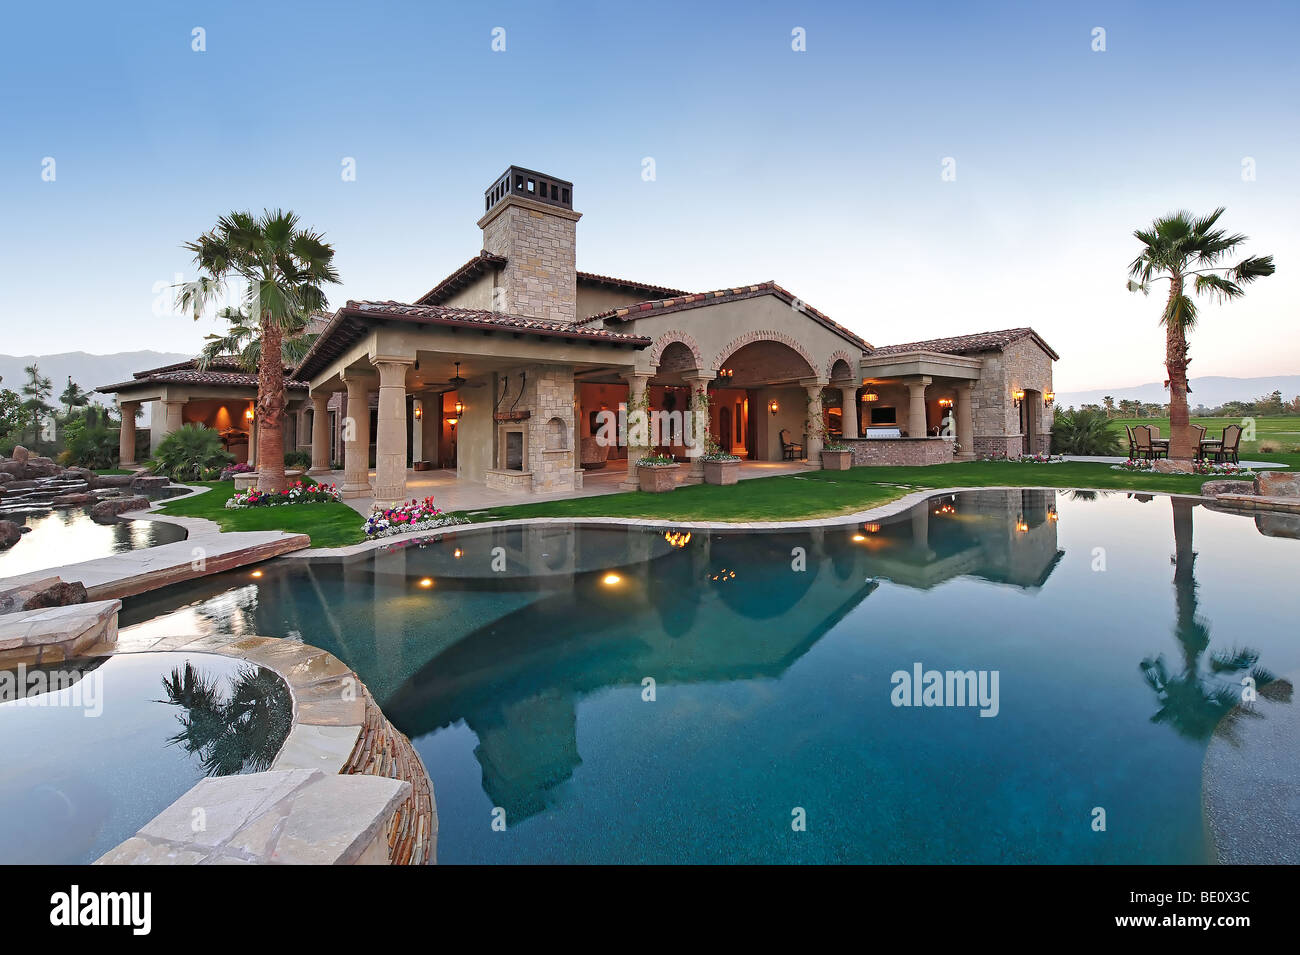 View across swimming pool of massive luxury home at dusk Stock Photo